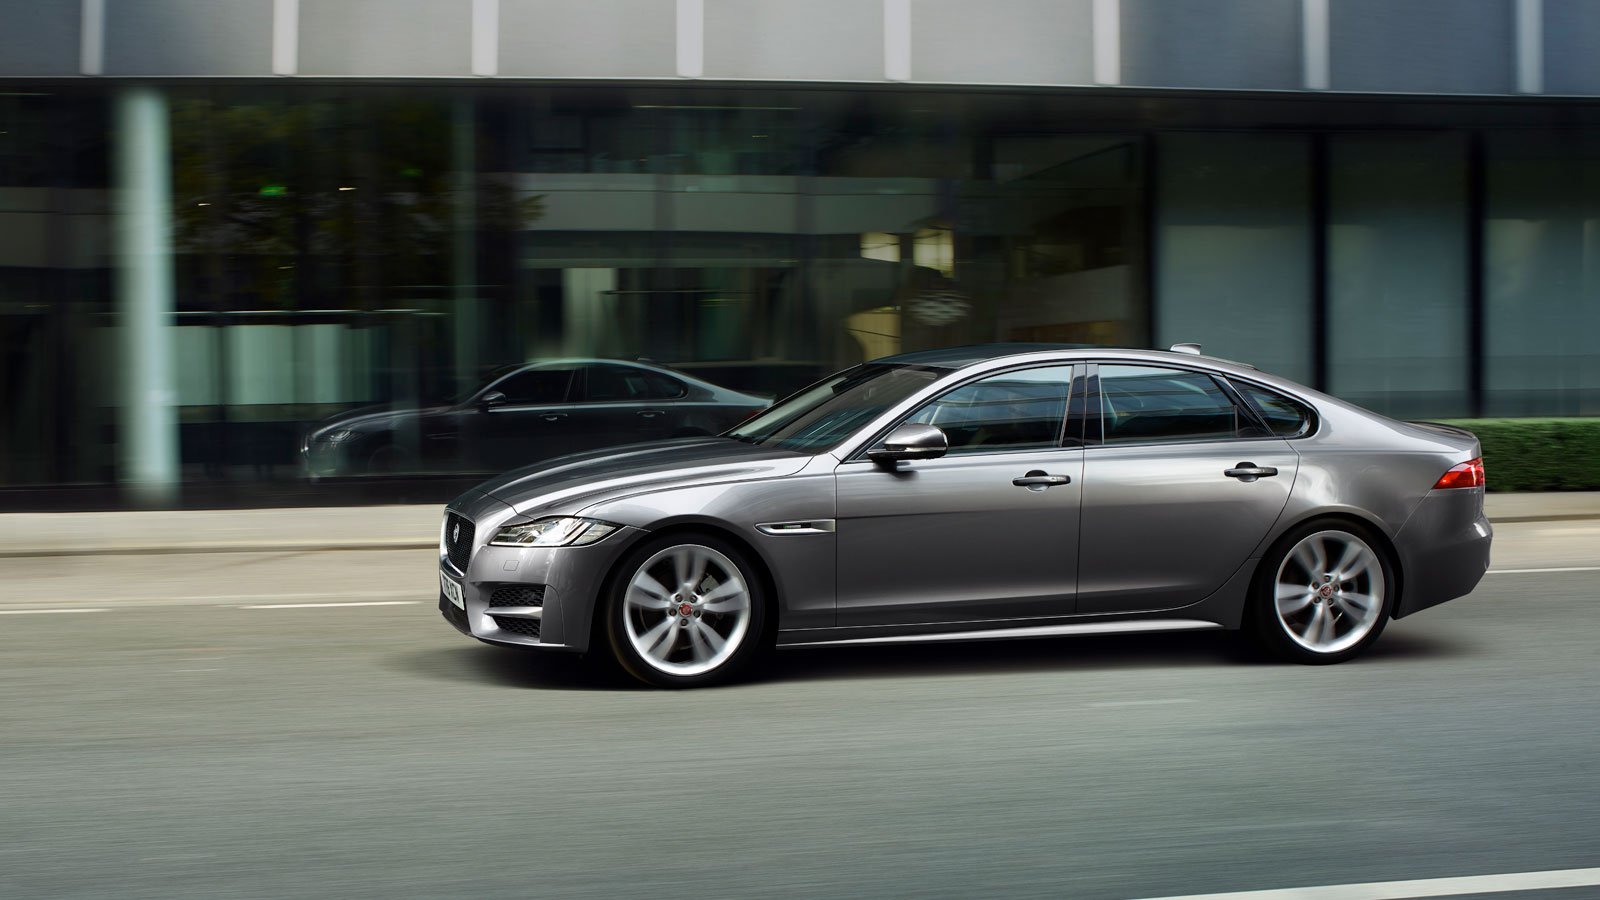 Jaguar XF 2.0d (180) Chequered Flag SPECIAL EDITIONS image 12